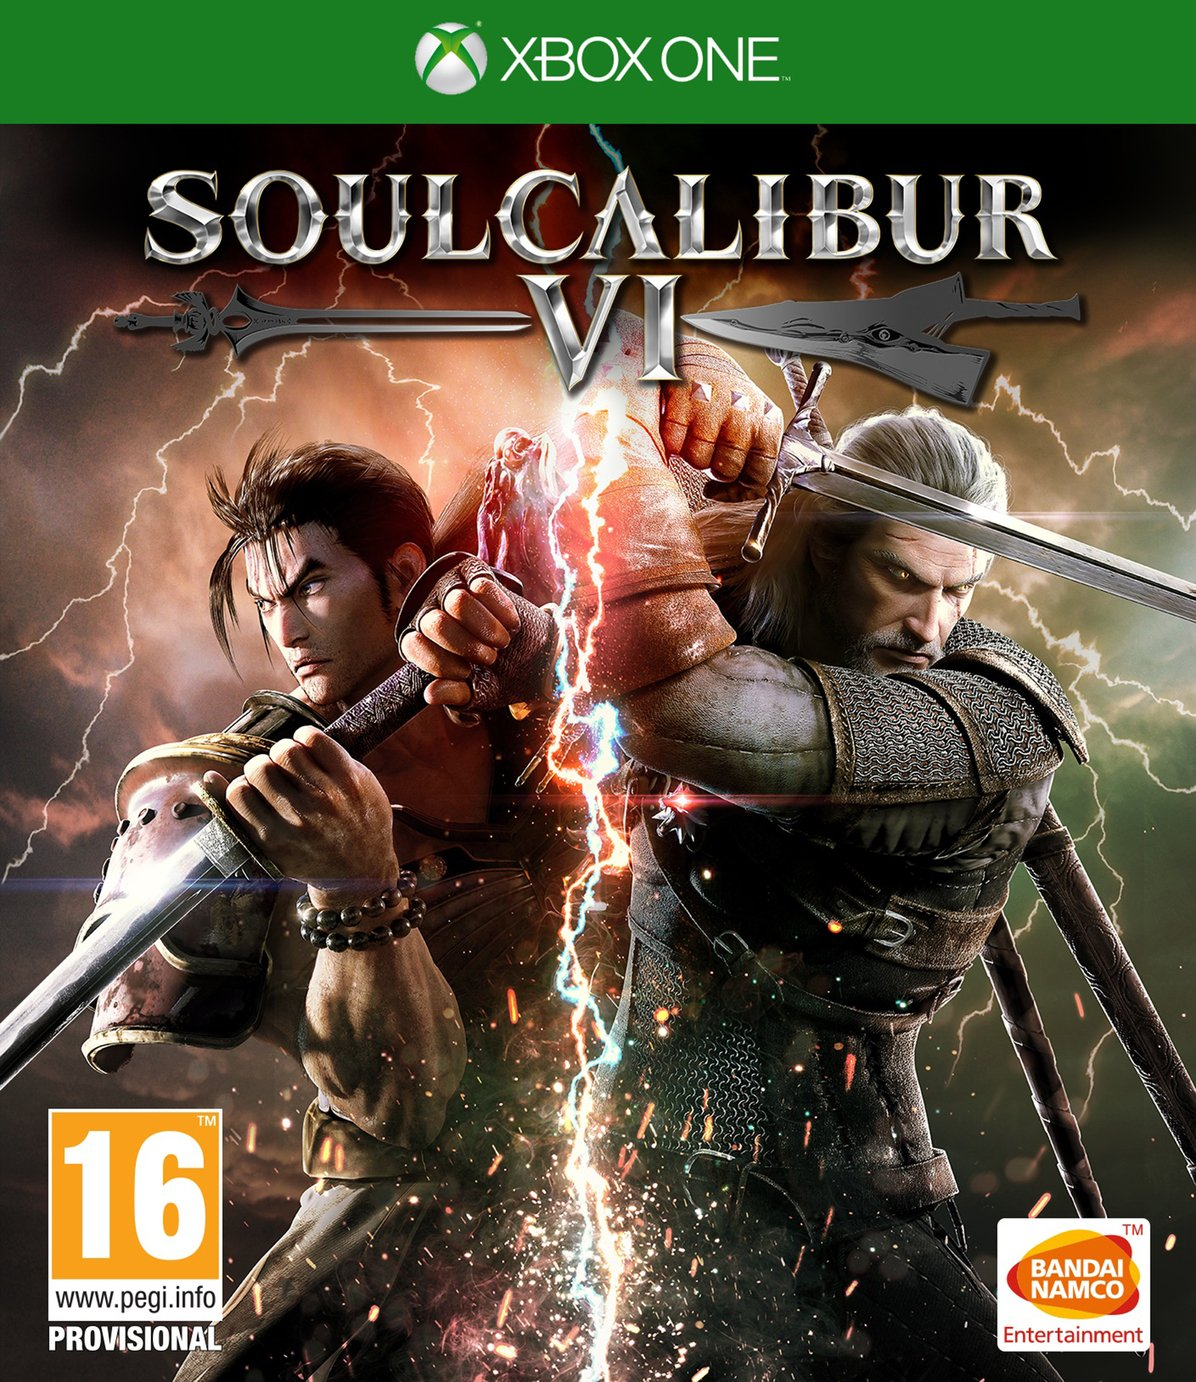 Soulcalibur VI Xbox One Game from Soul Calibur